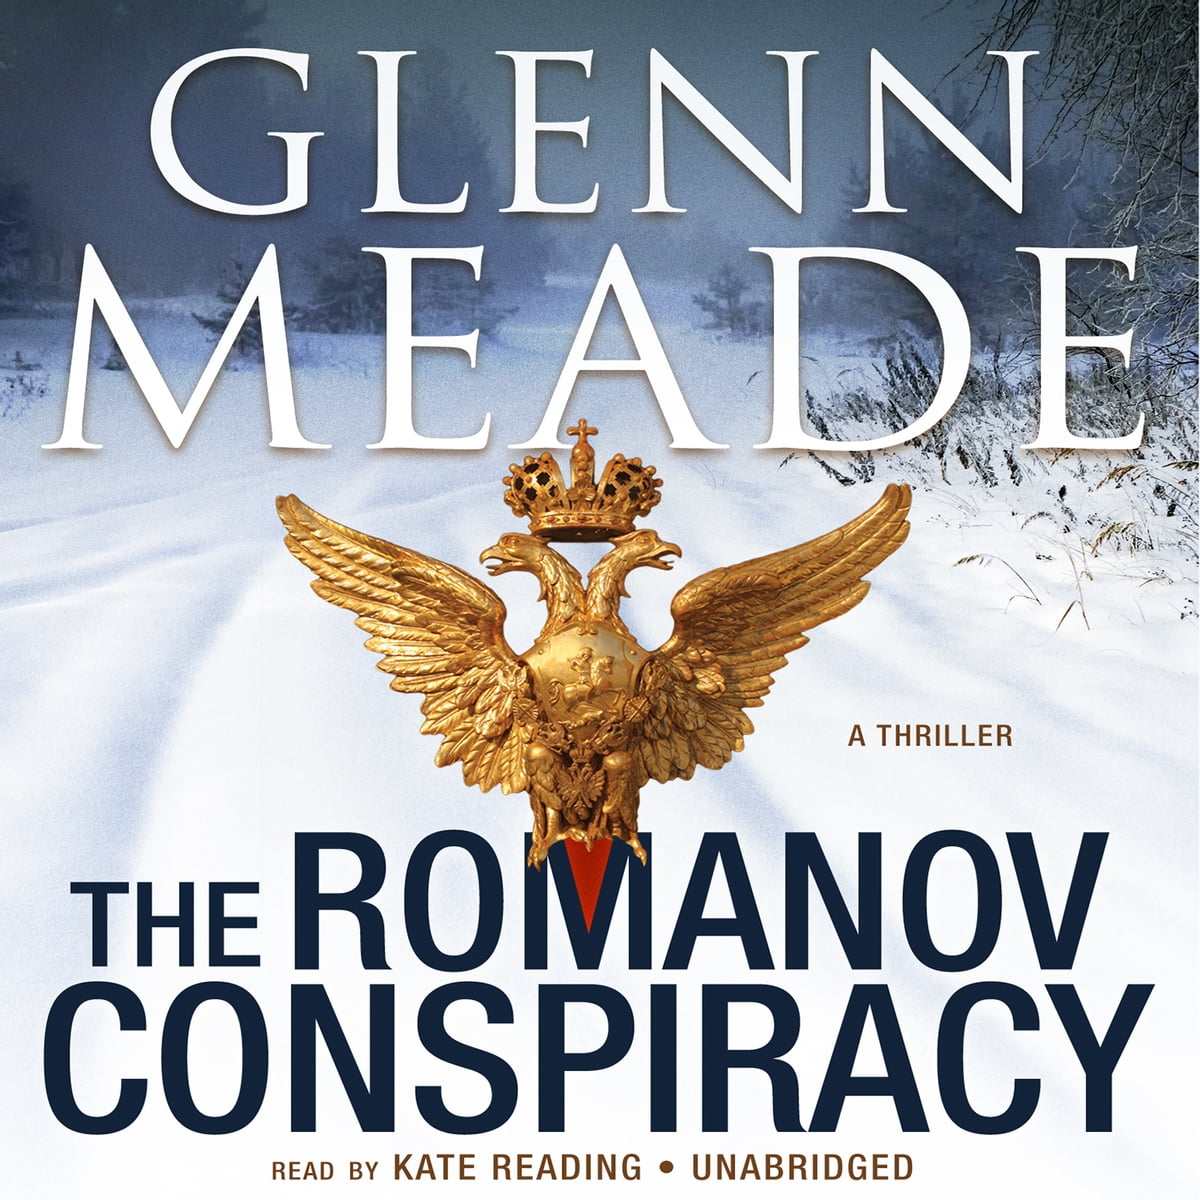 The Romanov Conspiracy audiobook by Glenn Meade - Rakuten Kobo